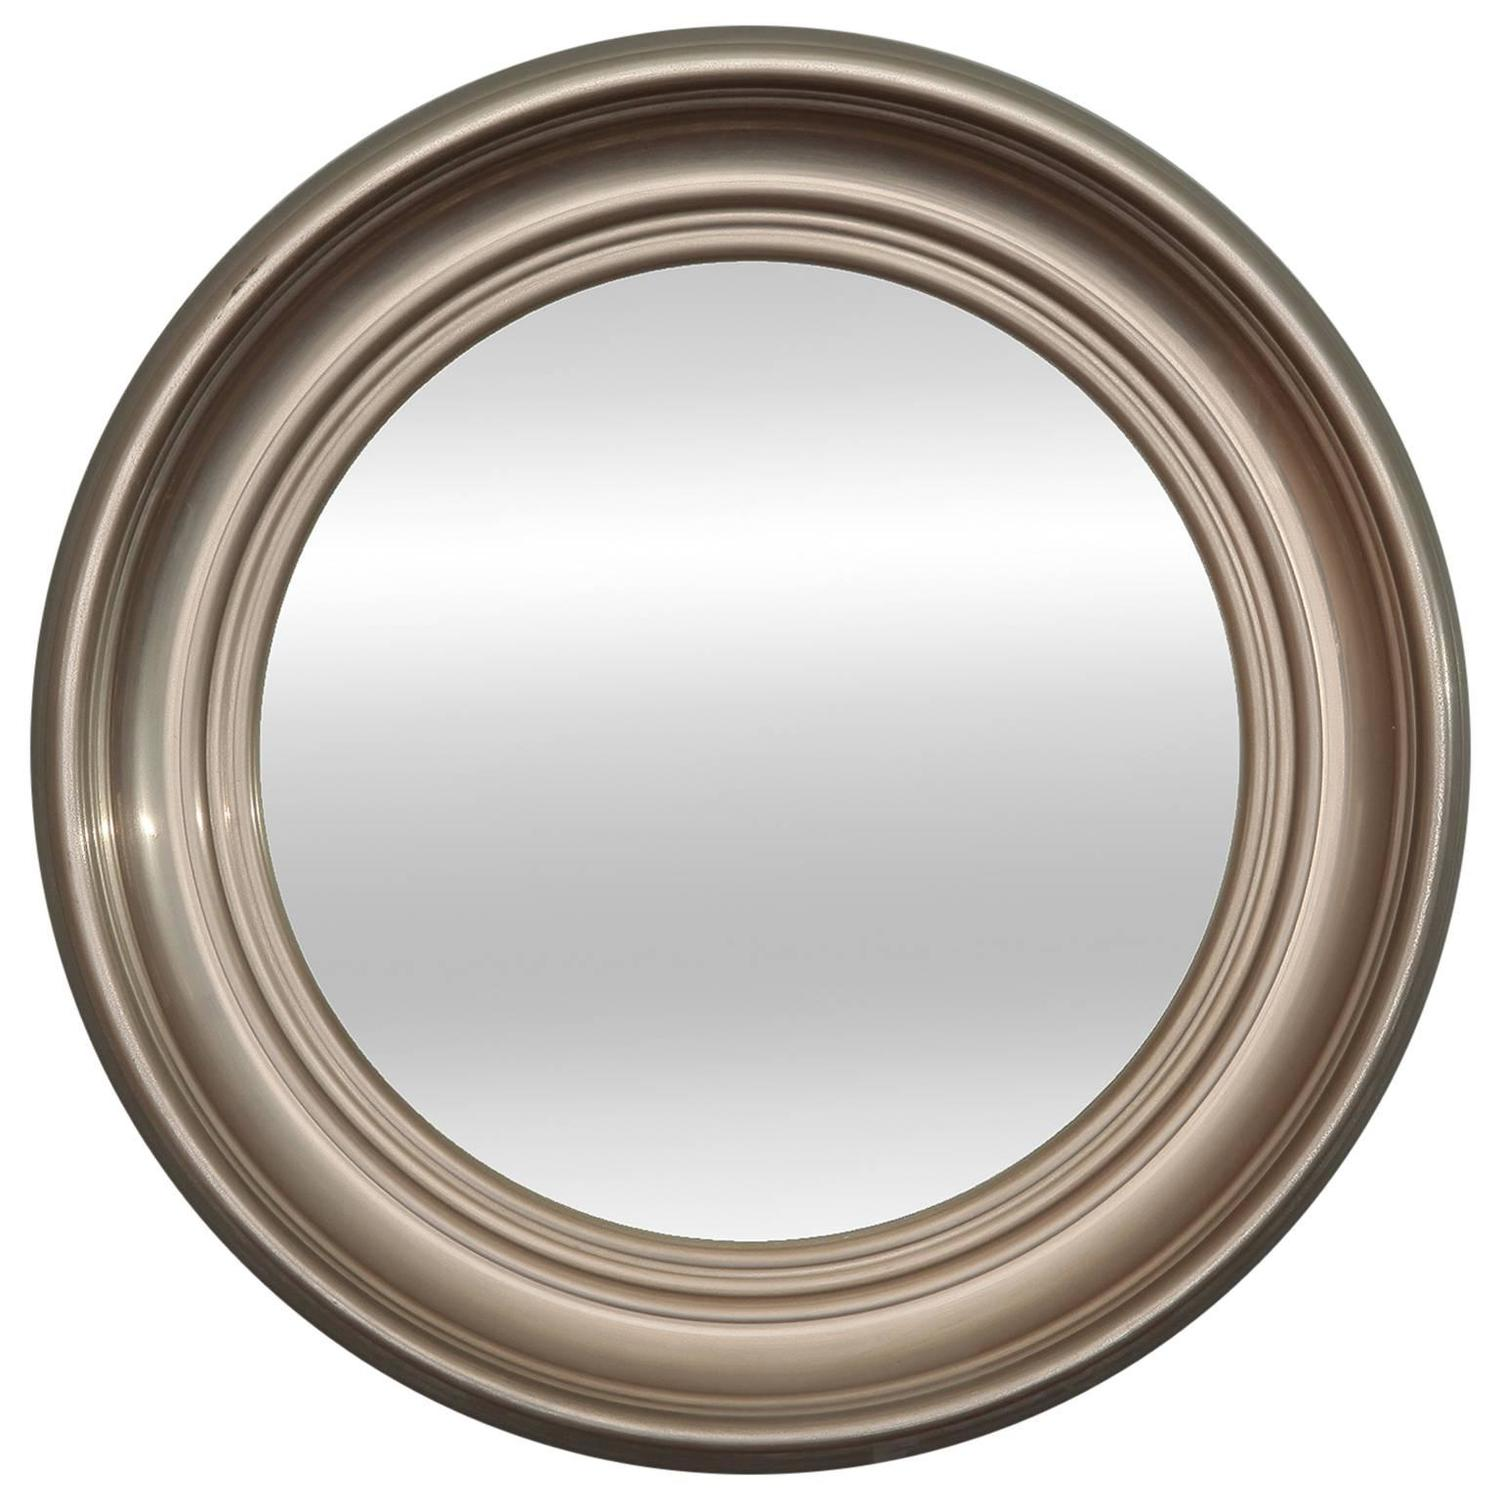 Round art deco silver metal mirror at 1stdibs for Round silver wall mirror